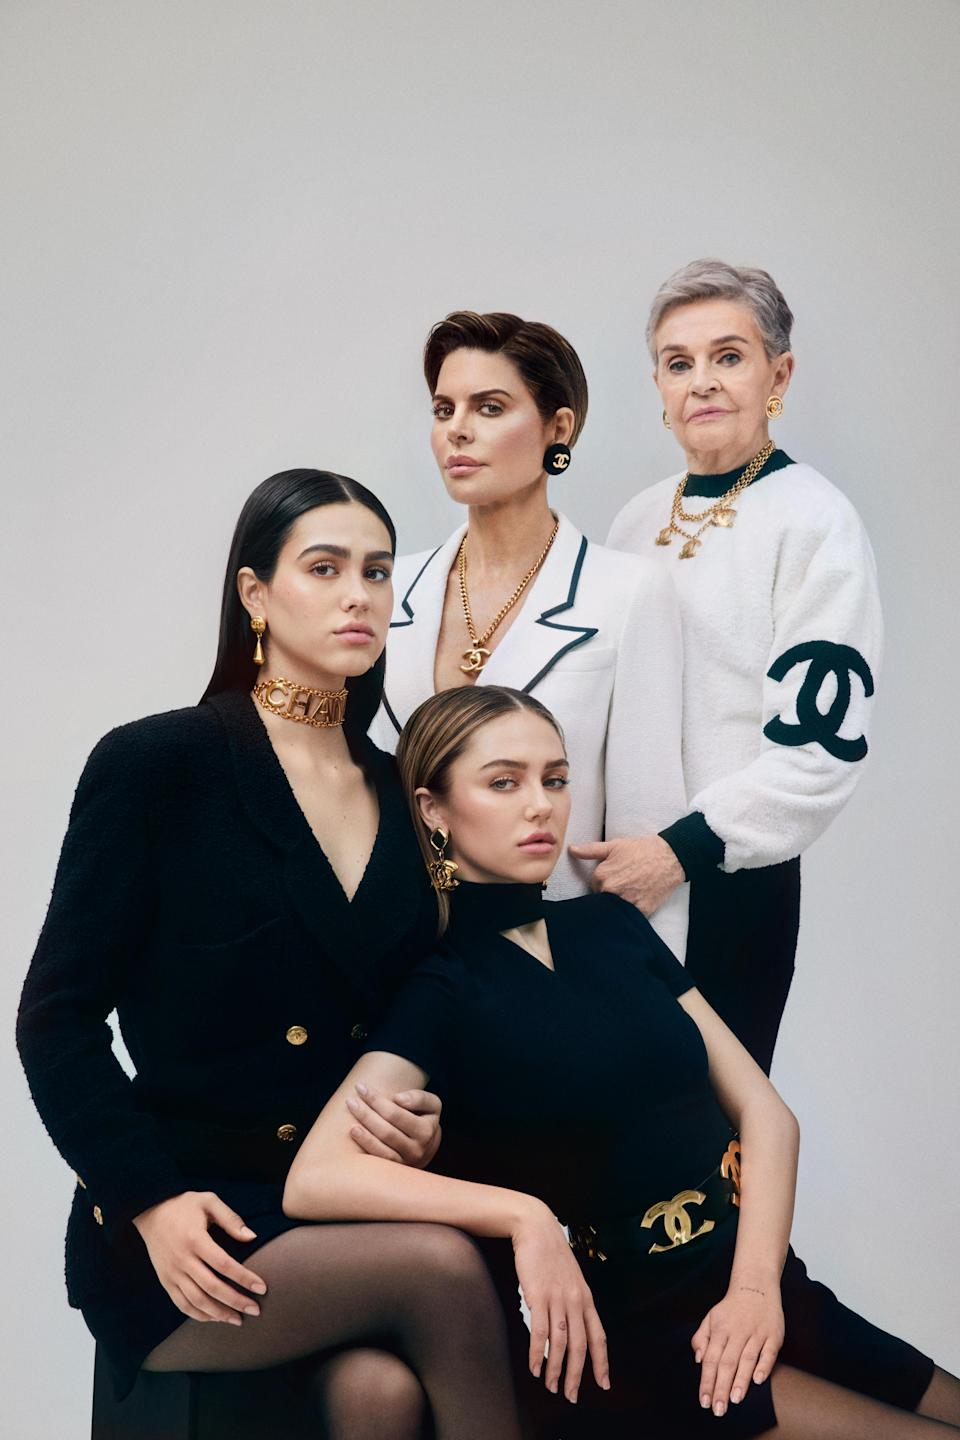 Rinna posed with daughters, Delilah Belle Hamlin, 20, and Amelia Gray Hamlin, 17, as well as her 90-year-old mother, Lois. (Credit: Olivia Malone)